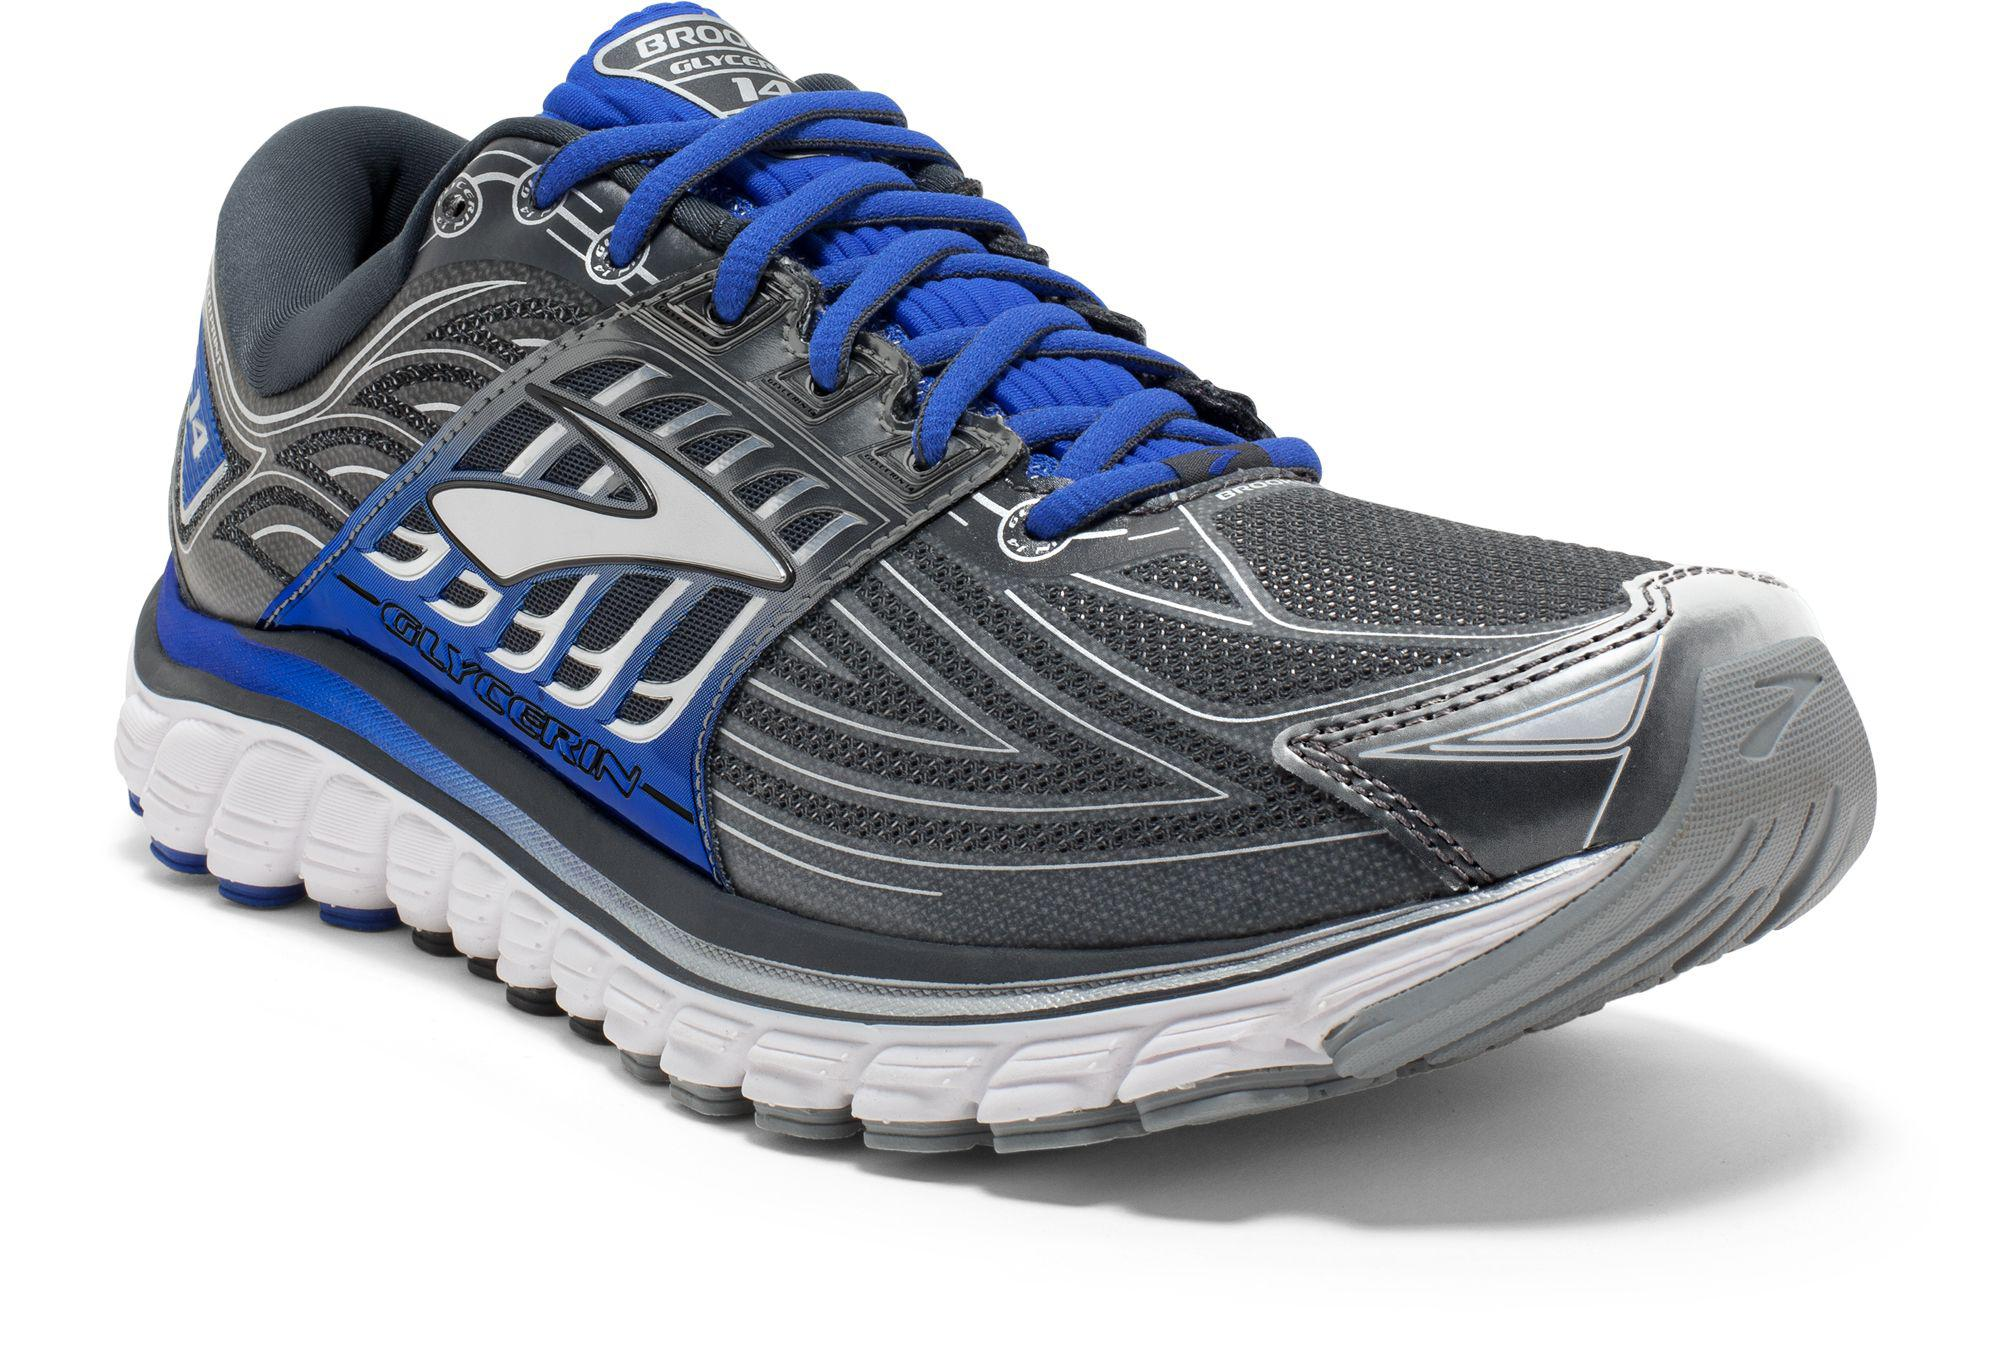 39238a85ba09d Lyst - Brooks Glycerin 14 Running Shoes in Gray for Men